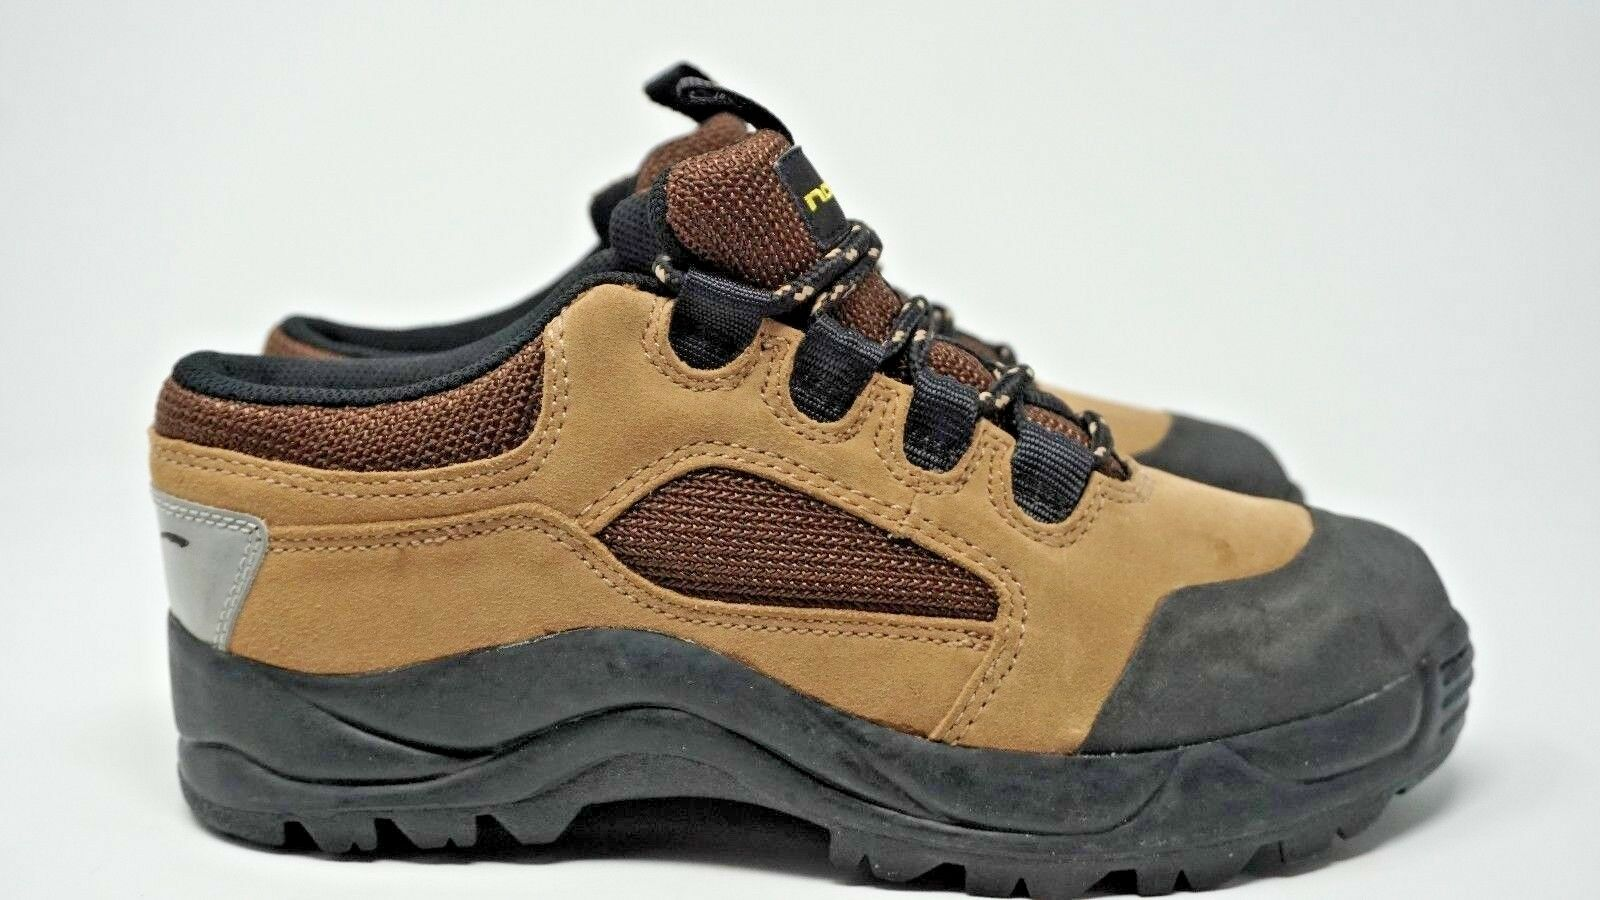 Nashbar Mens Cycle shoes Brown Suede Fabric Size 8.5M Free